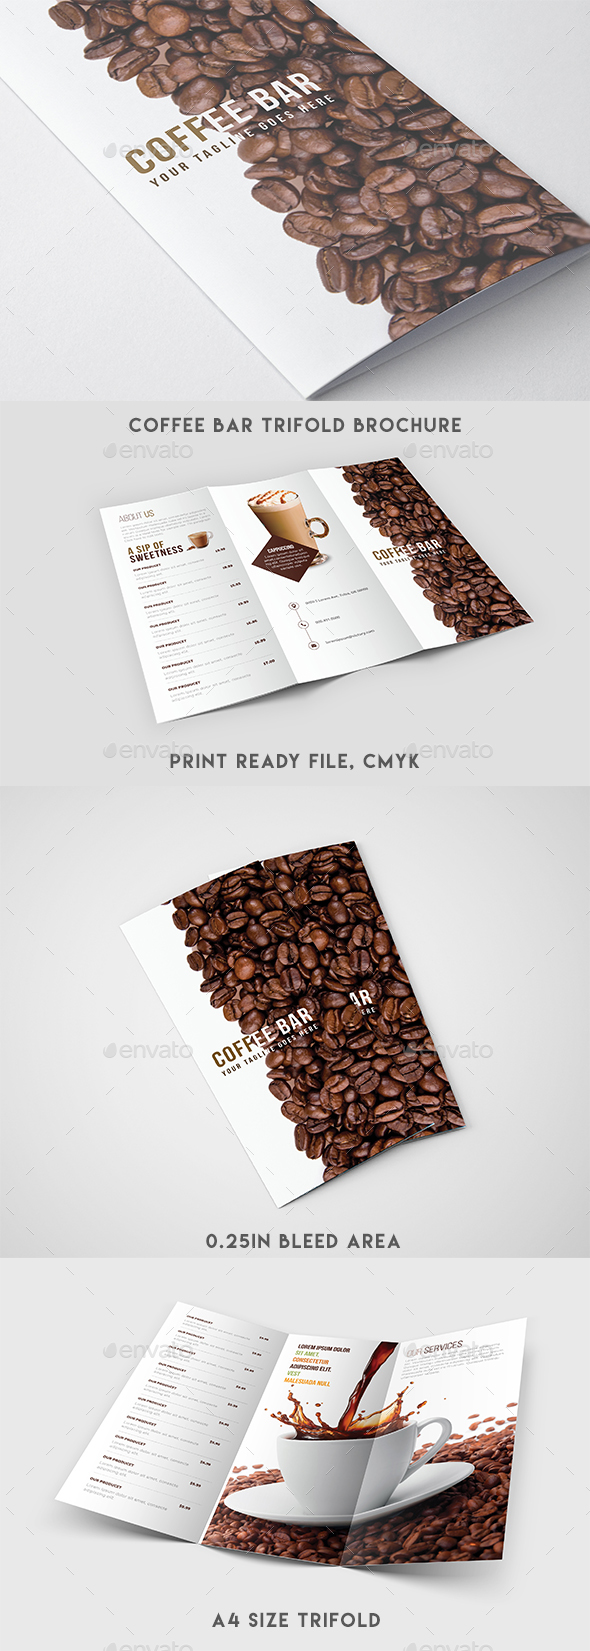 Trifold Brochure - Coffee Menu - Brochures Print Templates